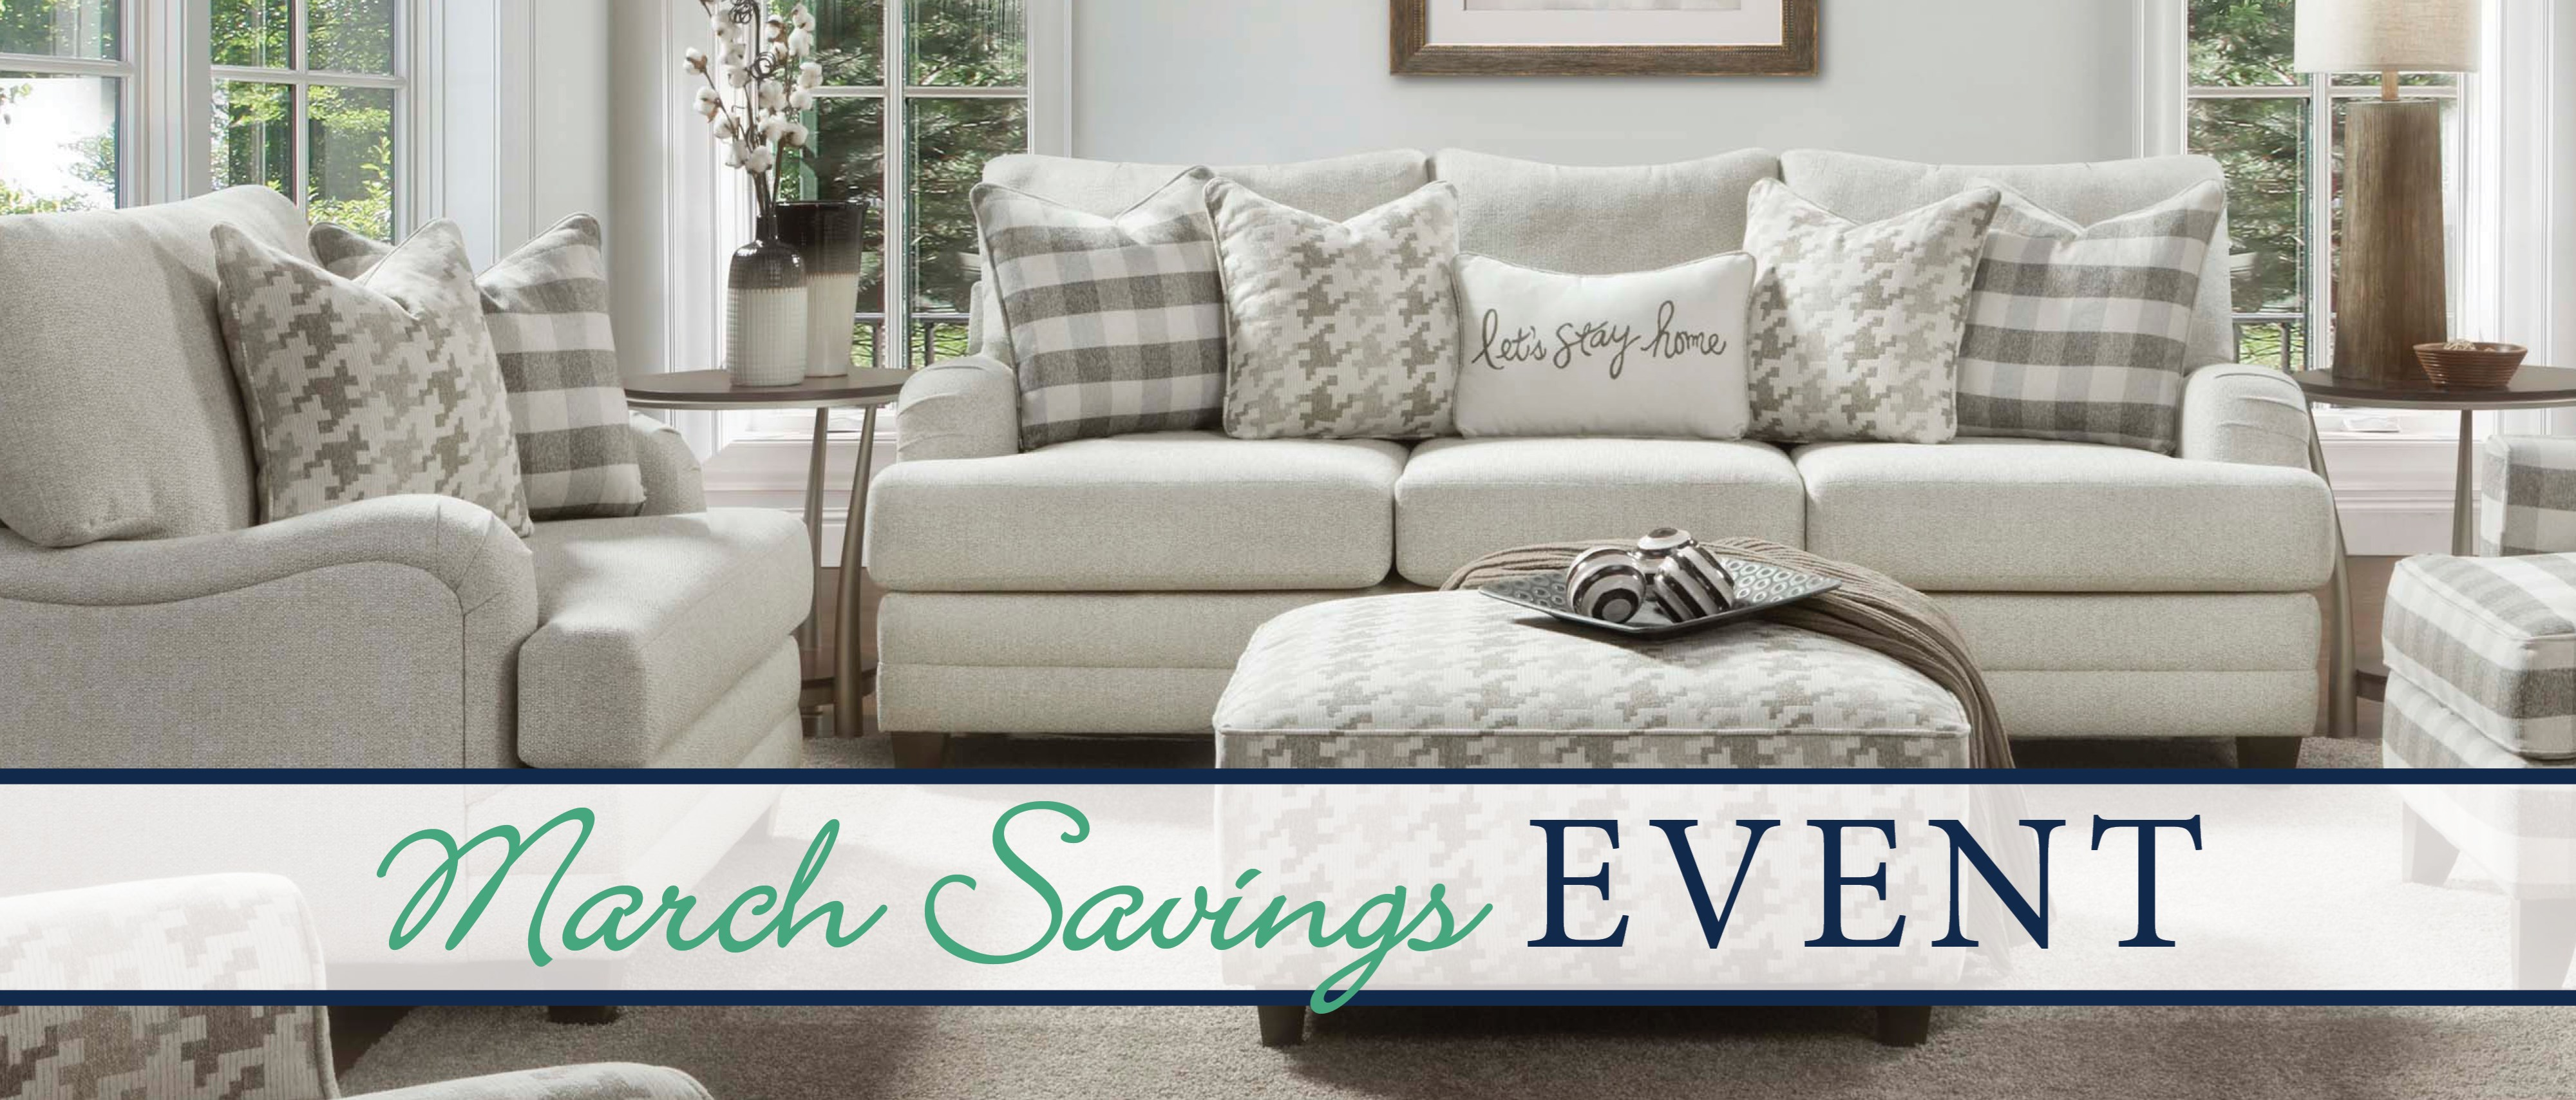 The Big March Savings Event